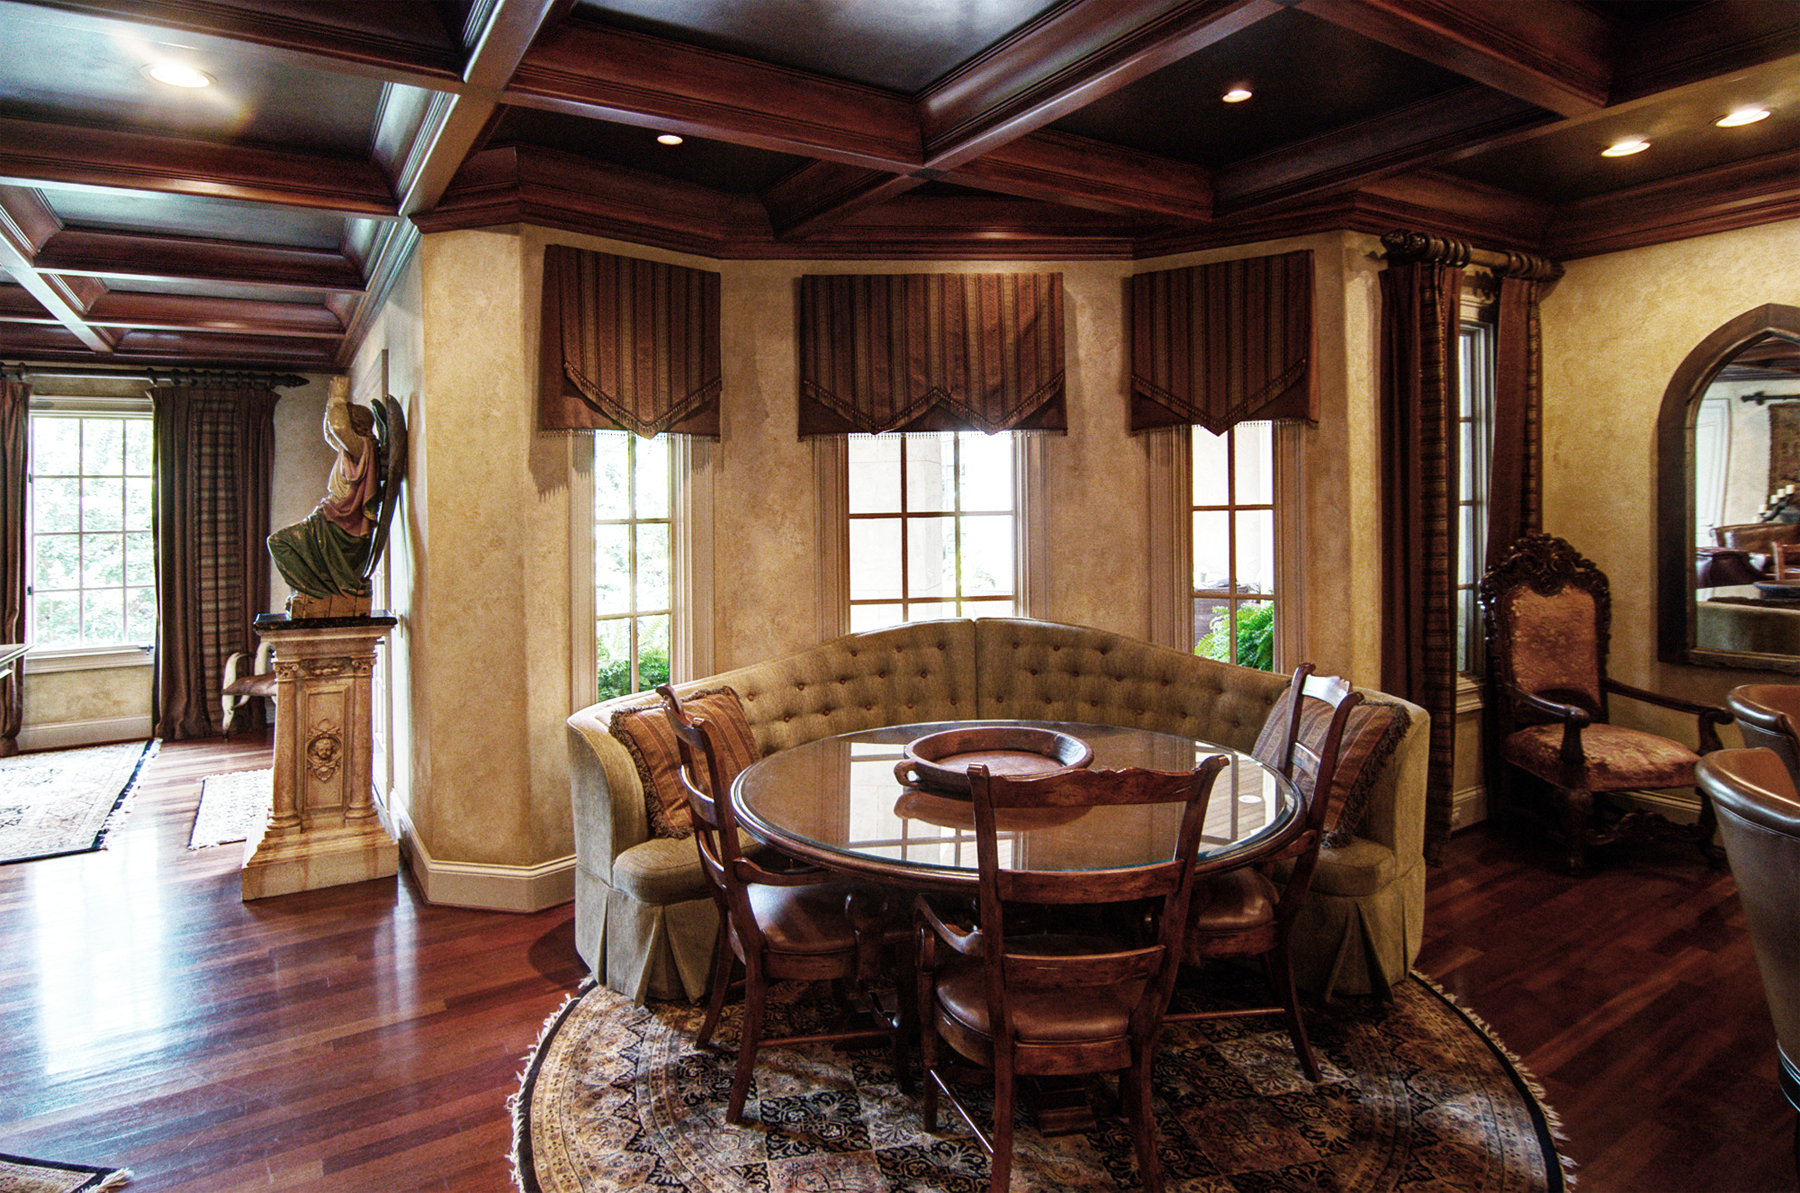 Wood grained coffer ceiling with  faux metal inserts and Tuscan colored plaster walls. Beautiful!